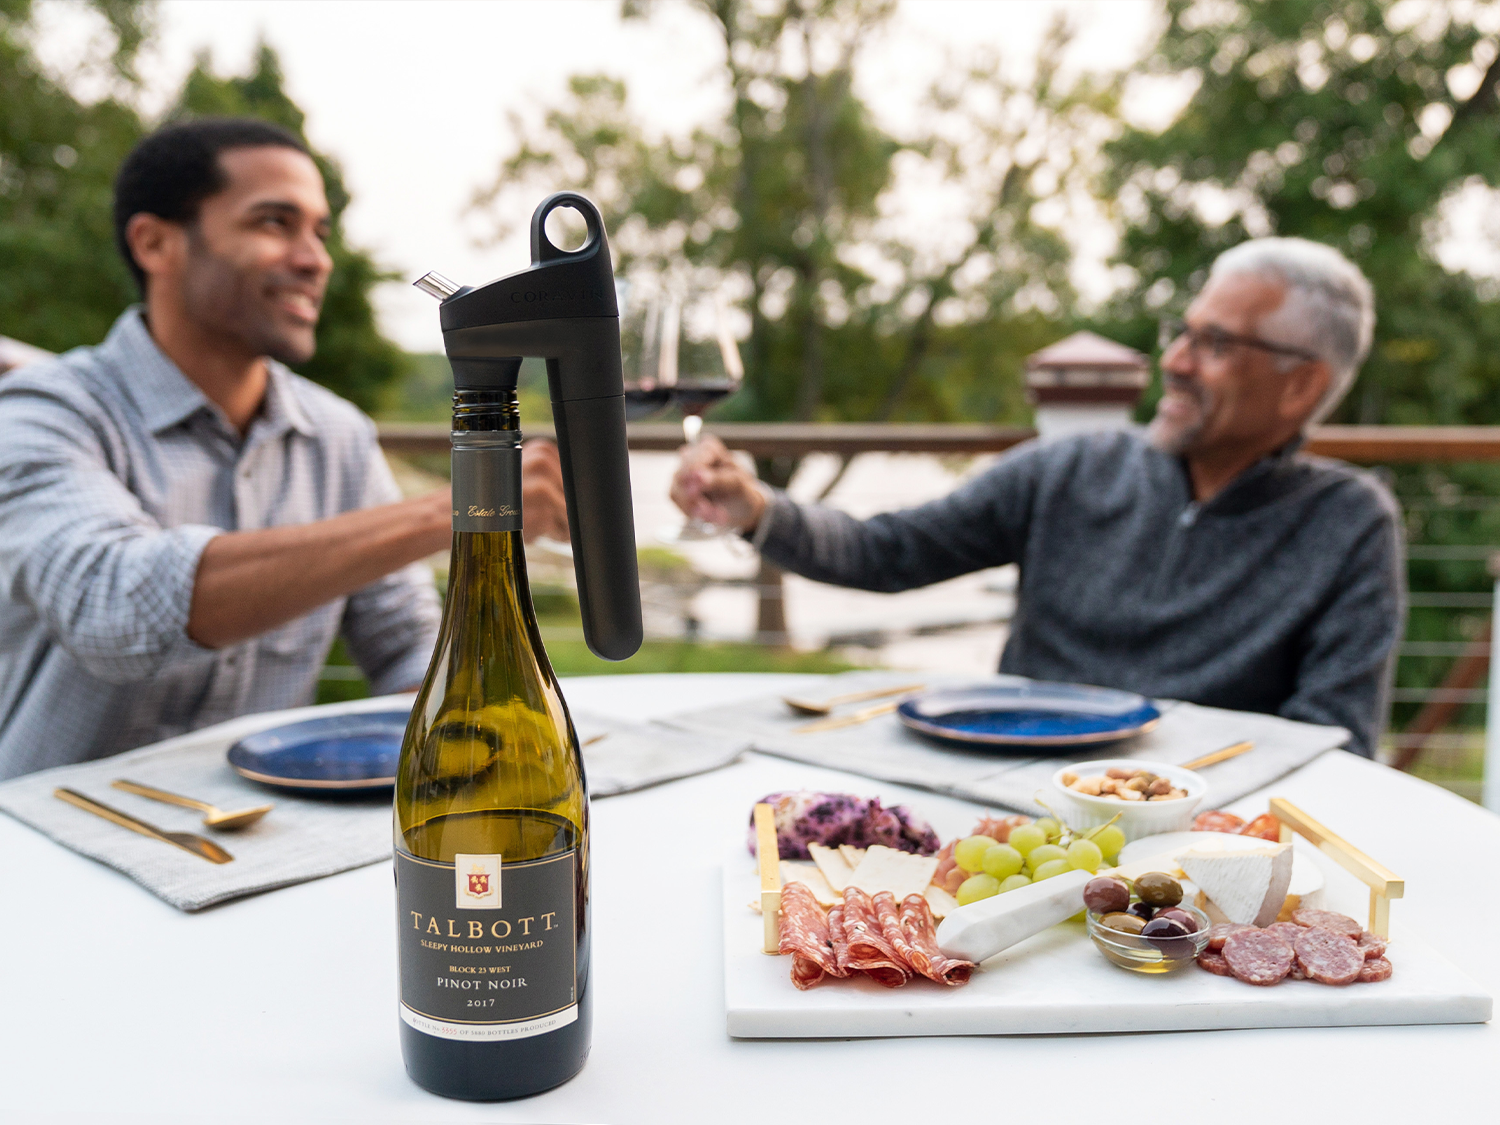 Pivot Wine Preservation System on bottle with man and son enjoying wine in the background